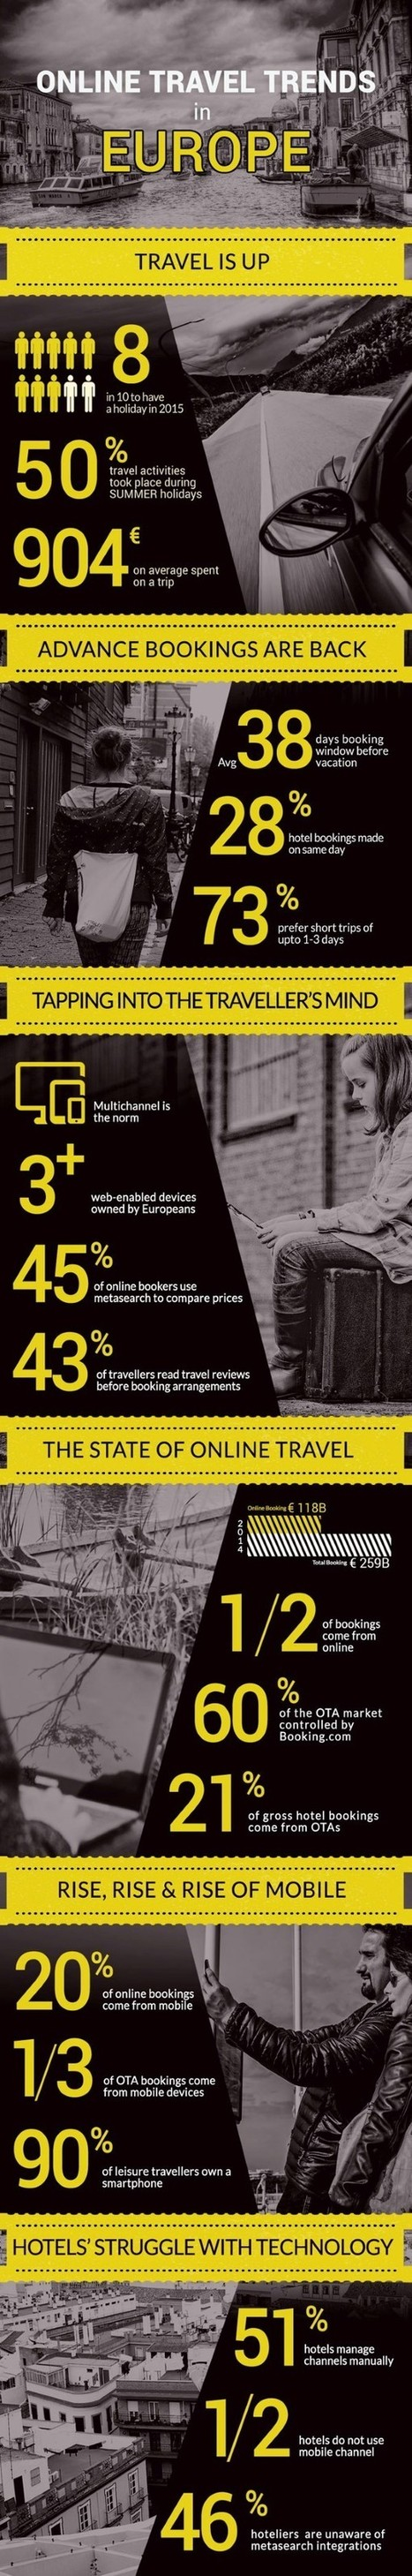 Online Travel Trends in Europe 201 | robinjoen | Scoop.it